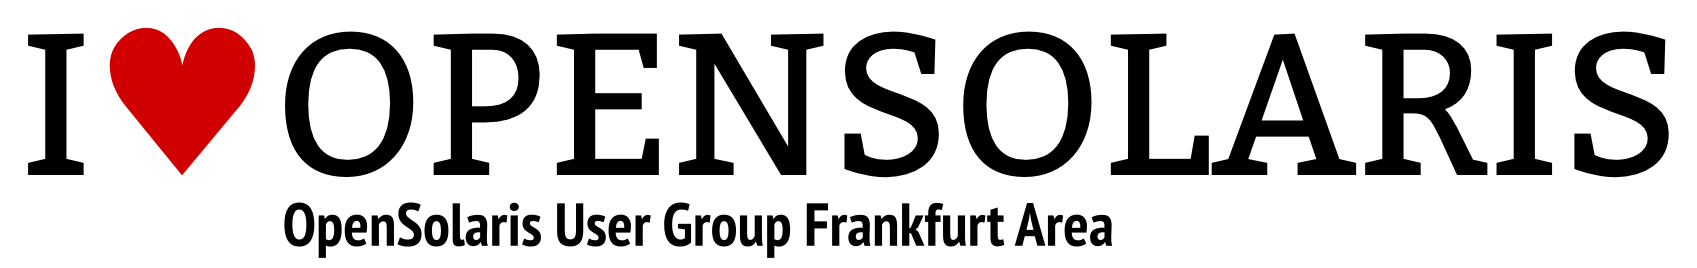 Logo of OpenSolaris User Group Frankfurt Area